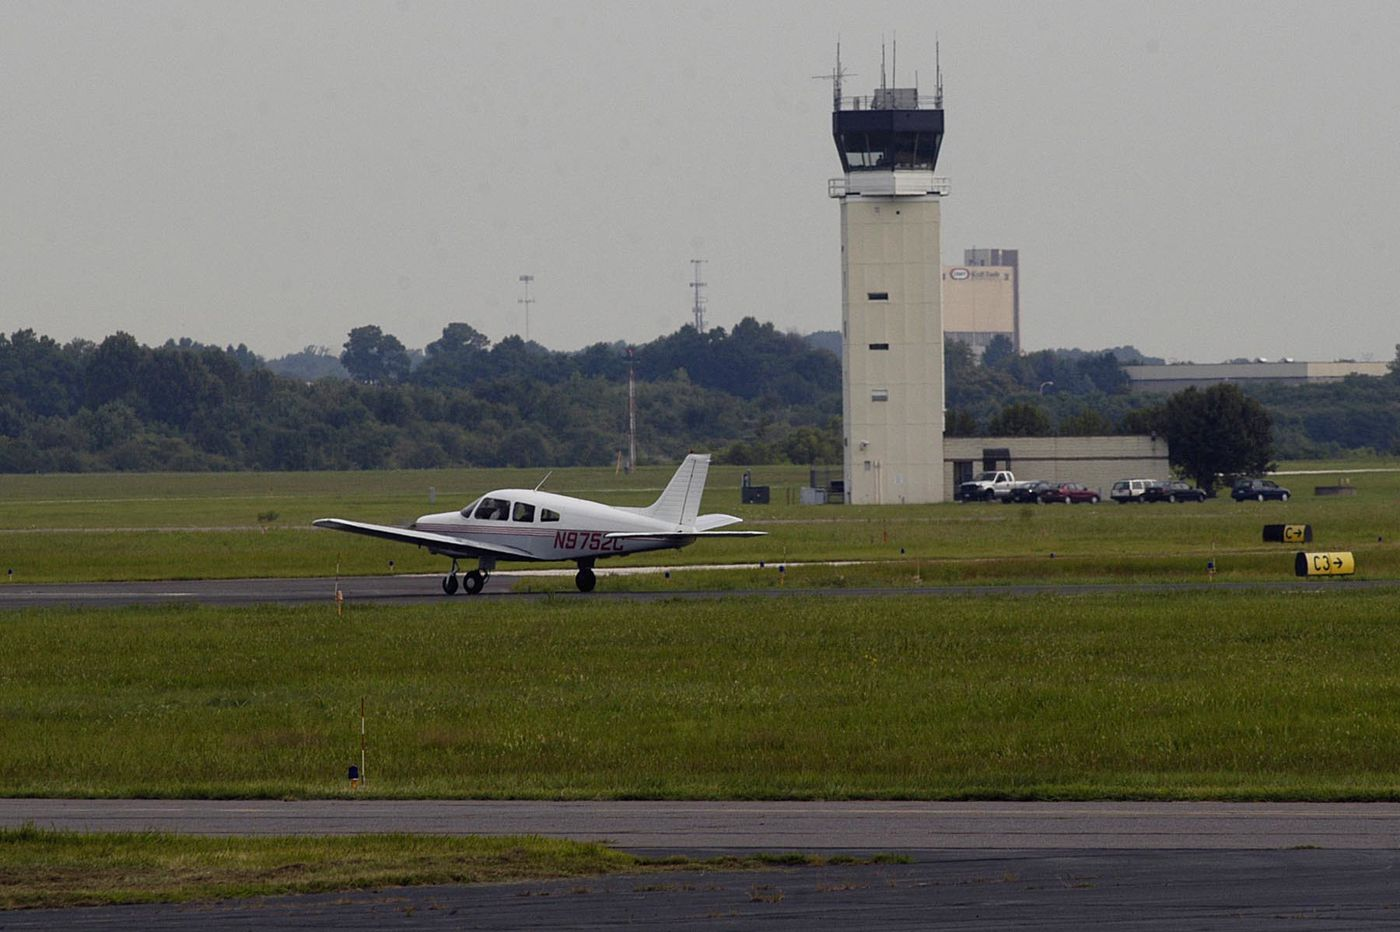 End of internet dead zone? Northeast Philly Airport hopes to have high-speed internet before 2020.